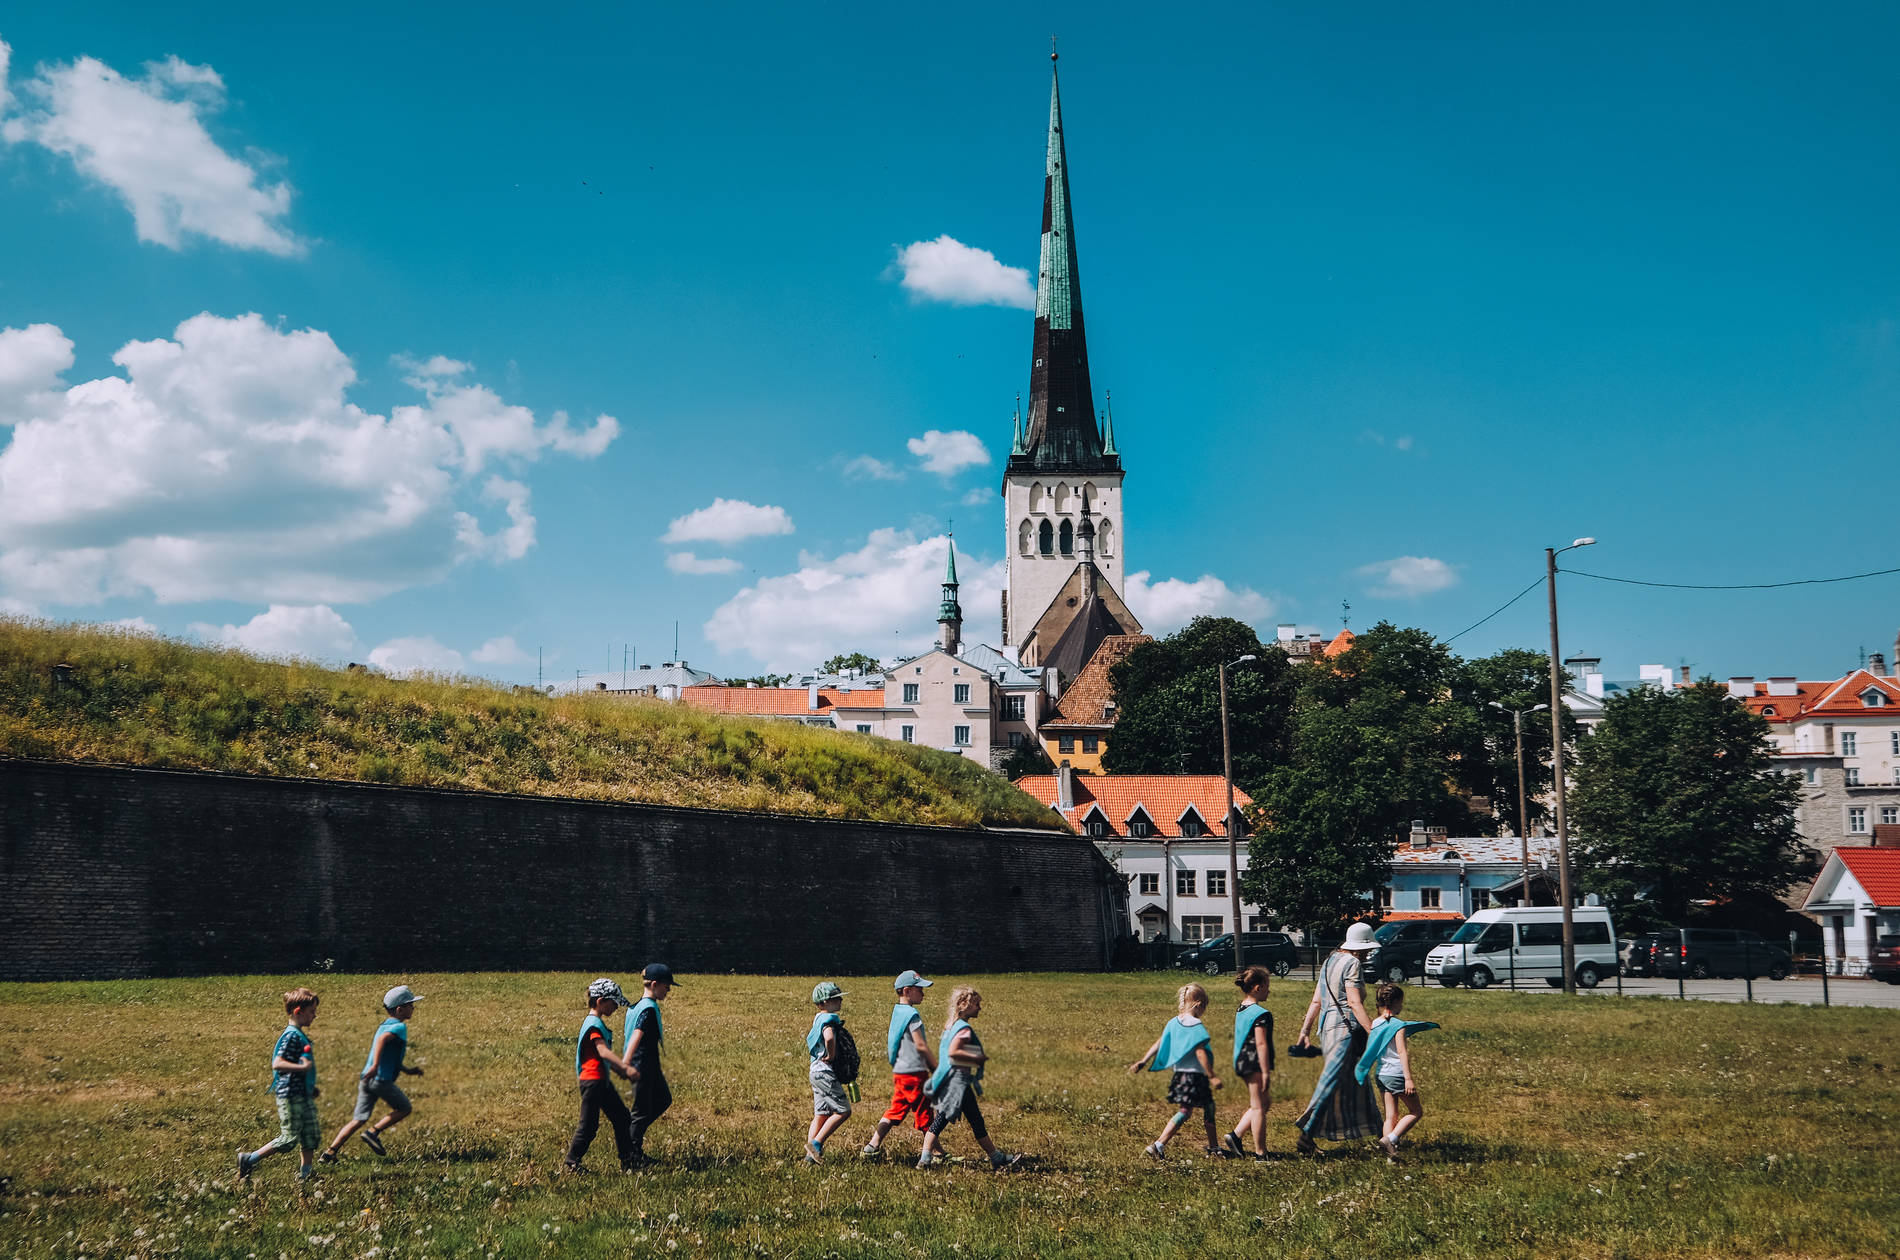 Children in the greenery of Tallinn Photo by: Kadi-Liis Koppel